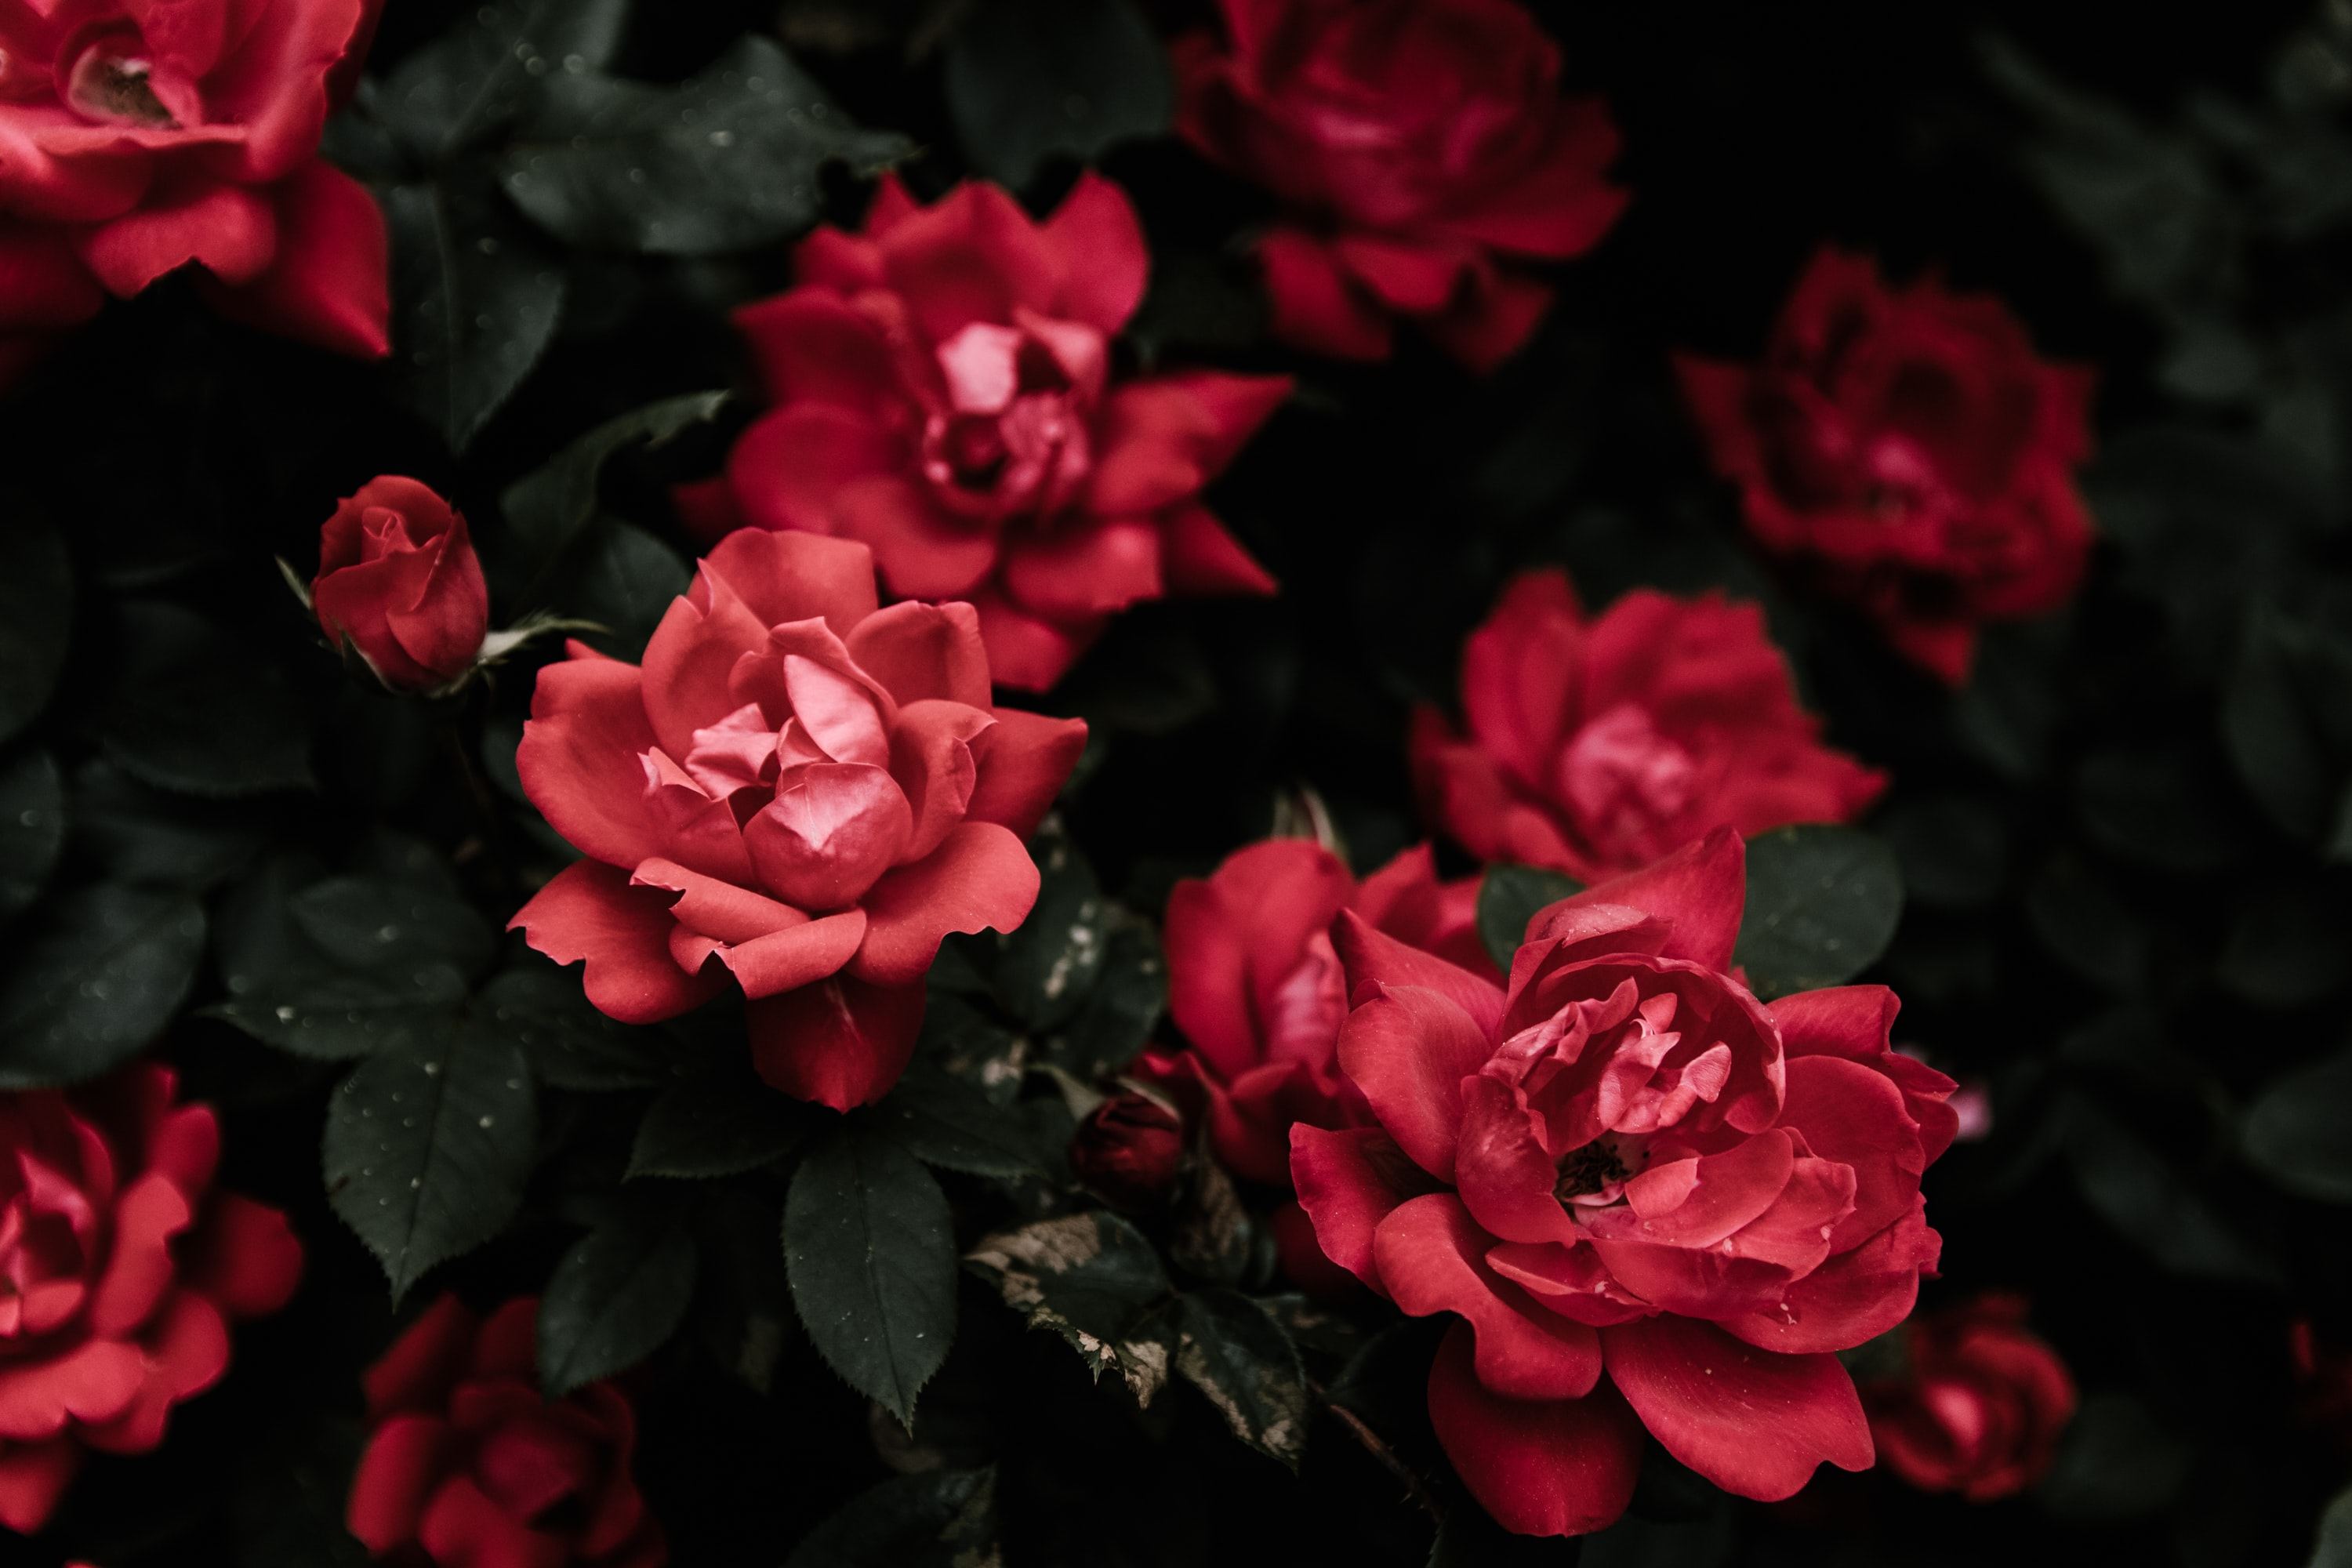 closeup photo of red petaled flowers